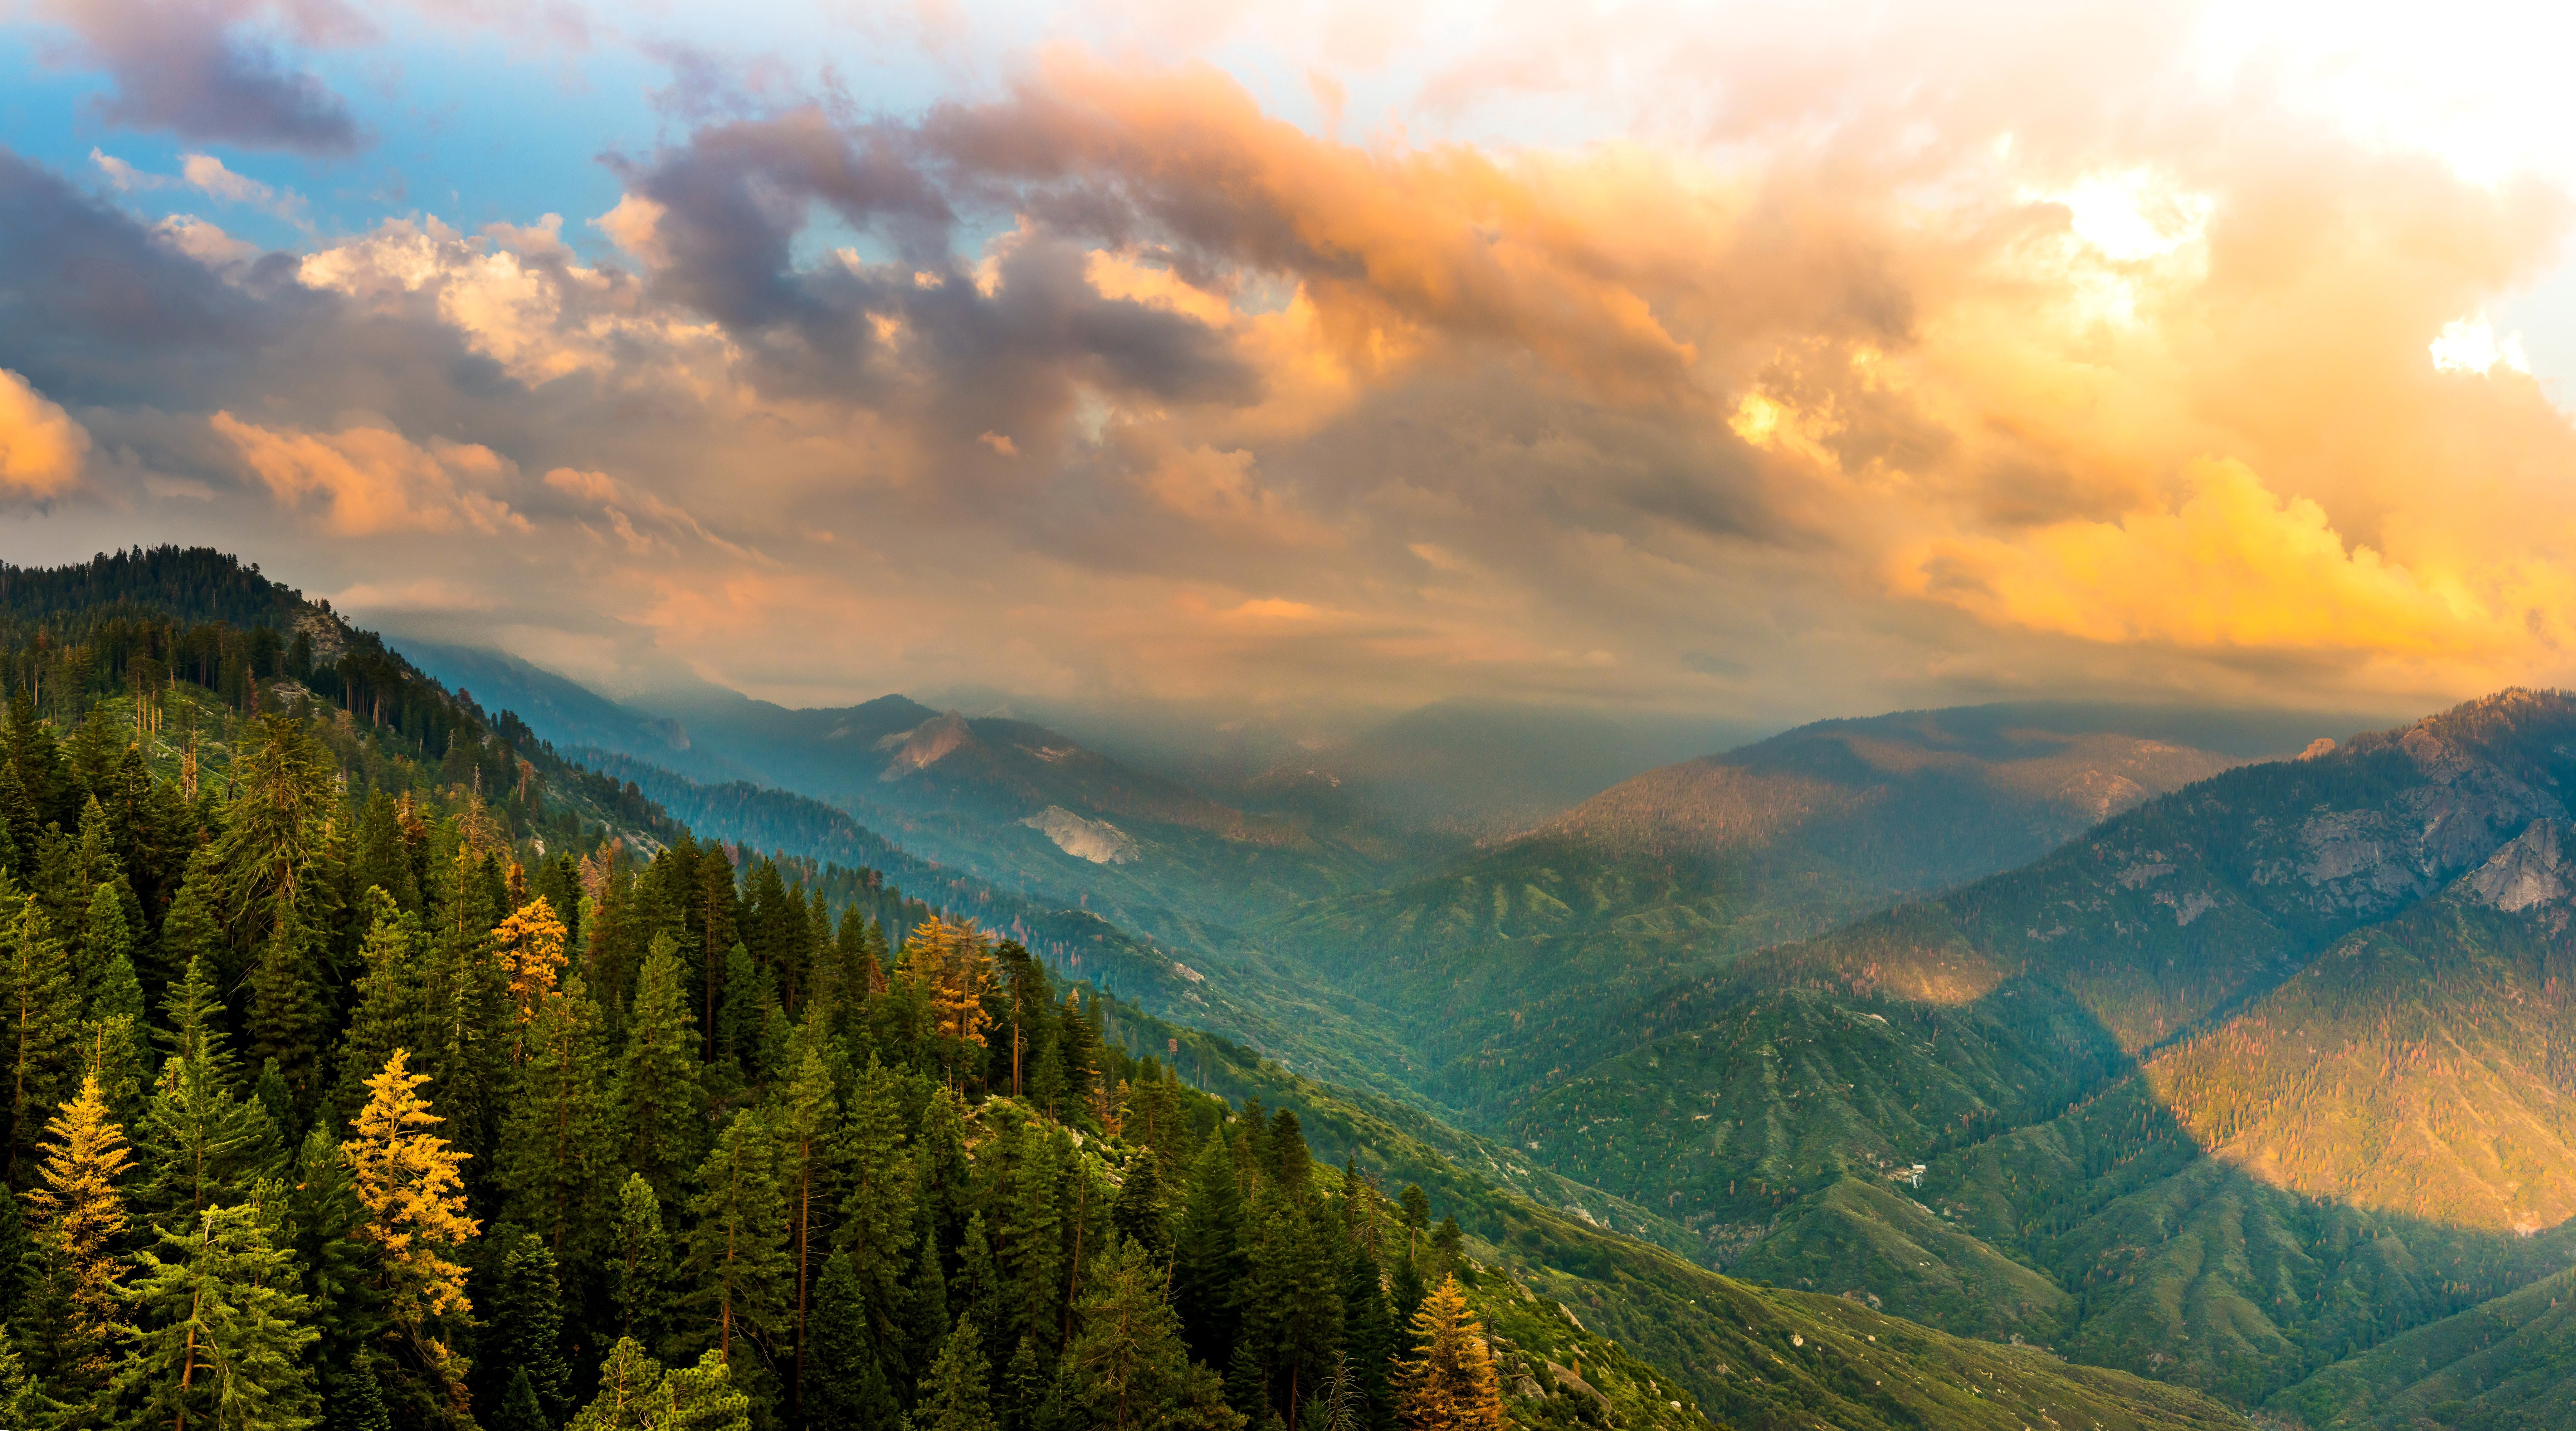 Usa Parks Scenery Mountains Forests California Clouds Kings 7200x4000